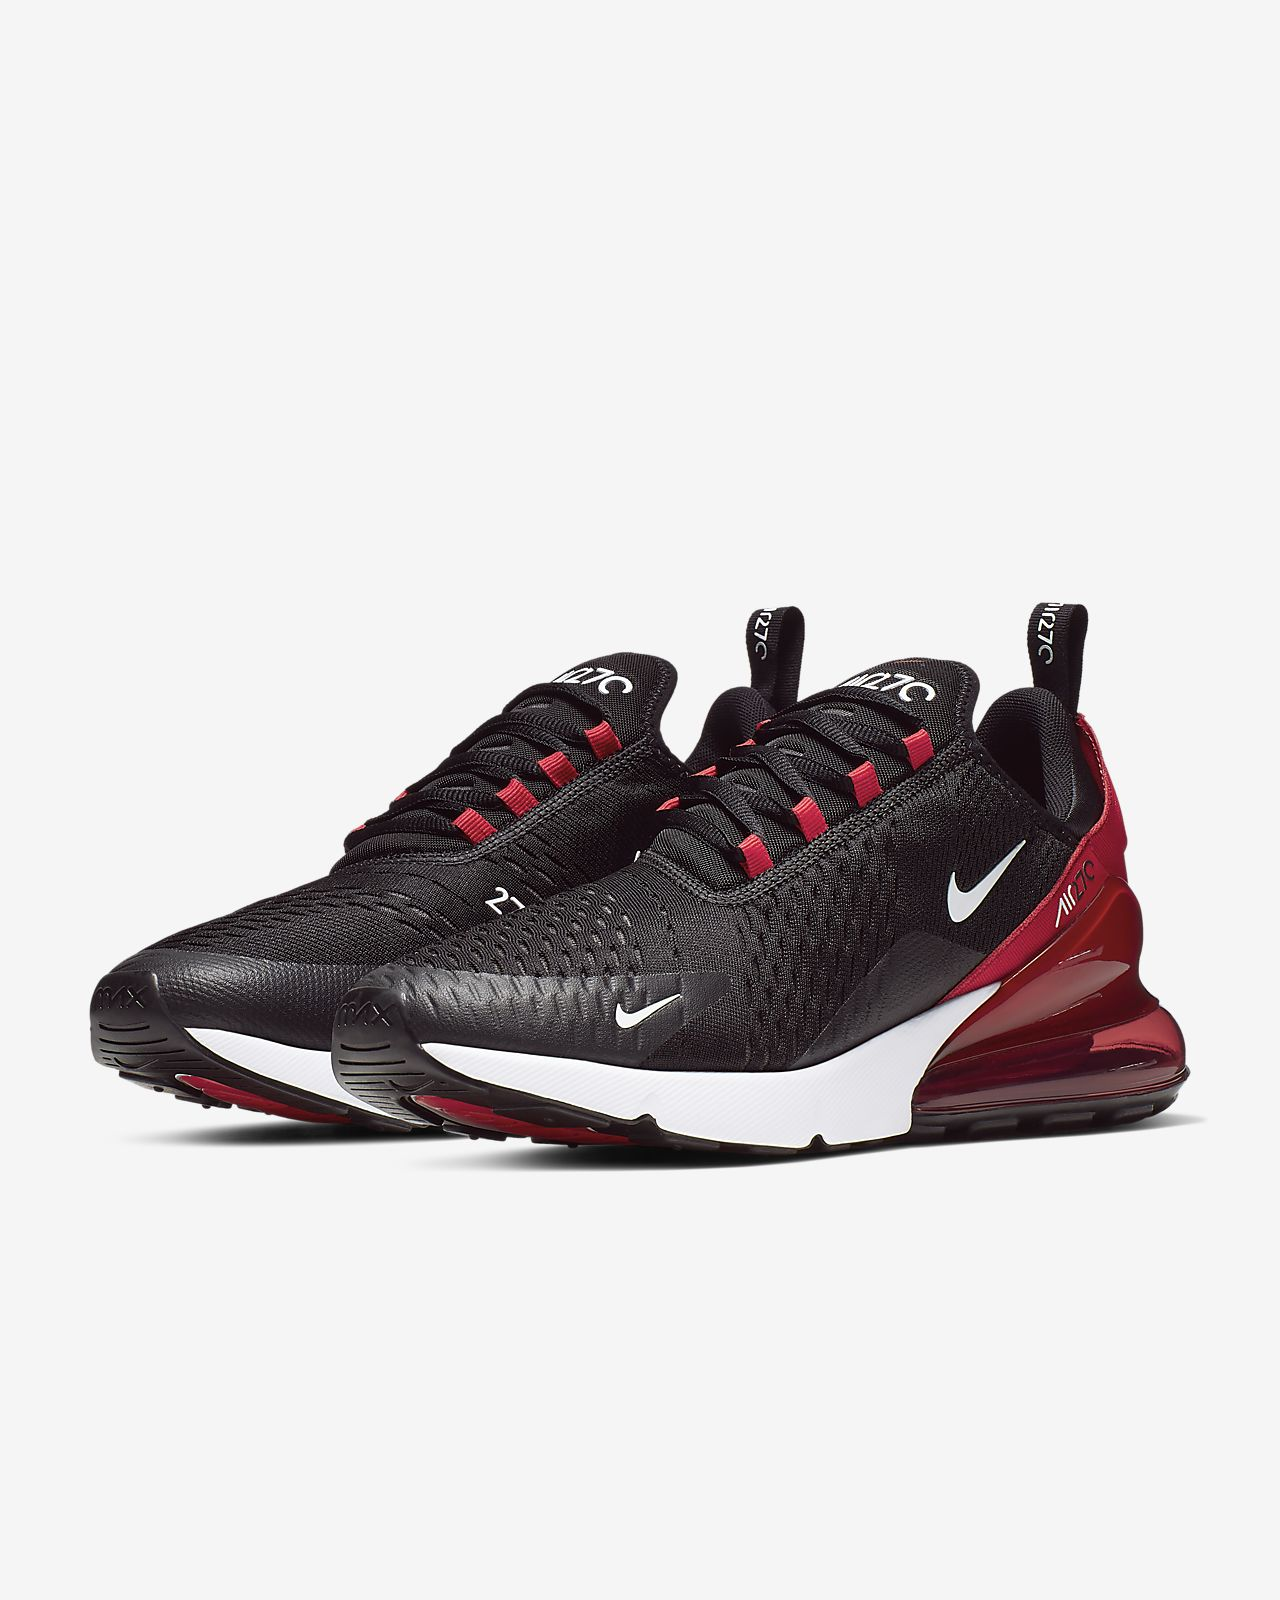 huge selection of d54ca 43186 ... Sko Nike Air Max 270 för män